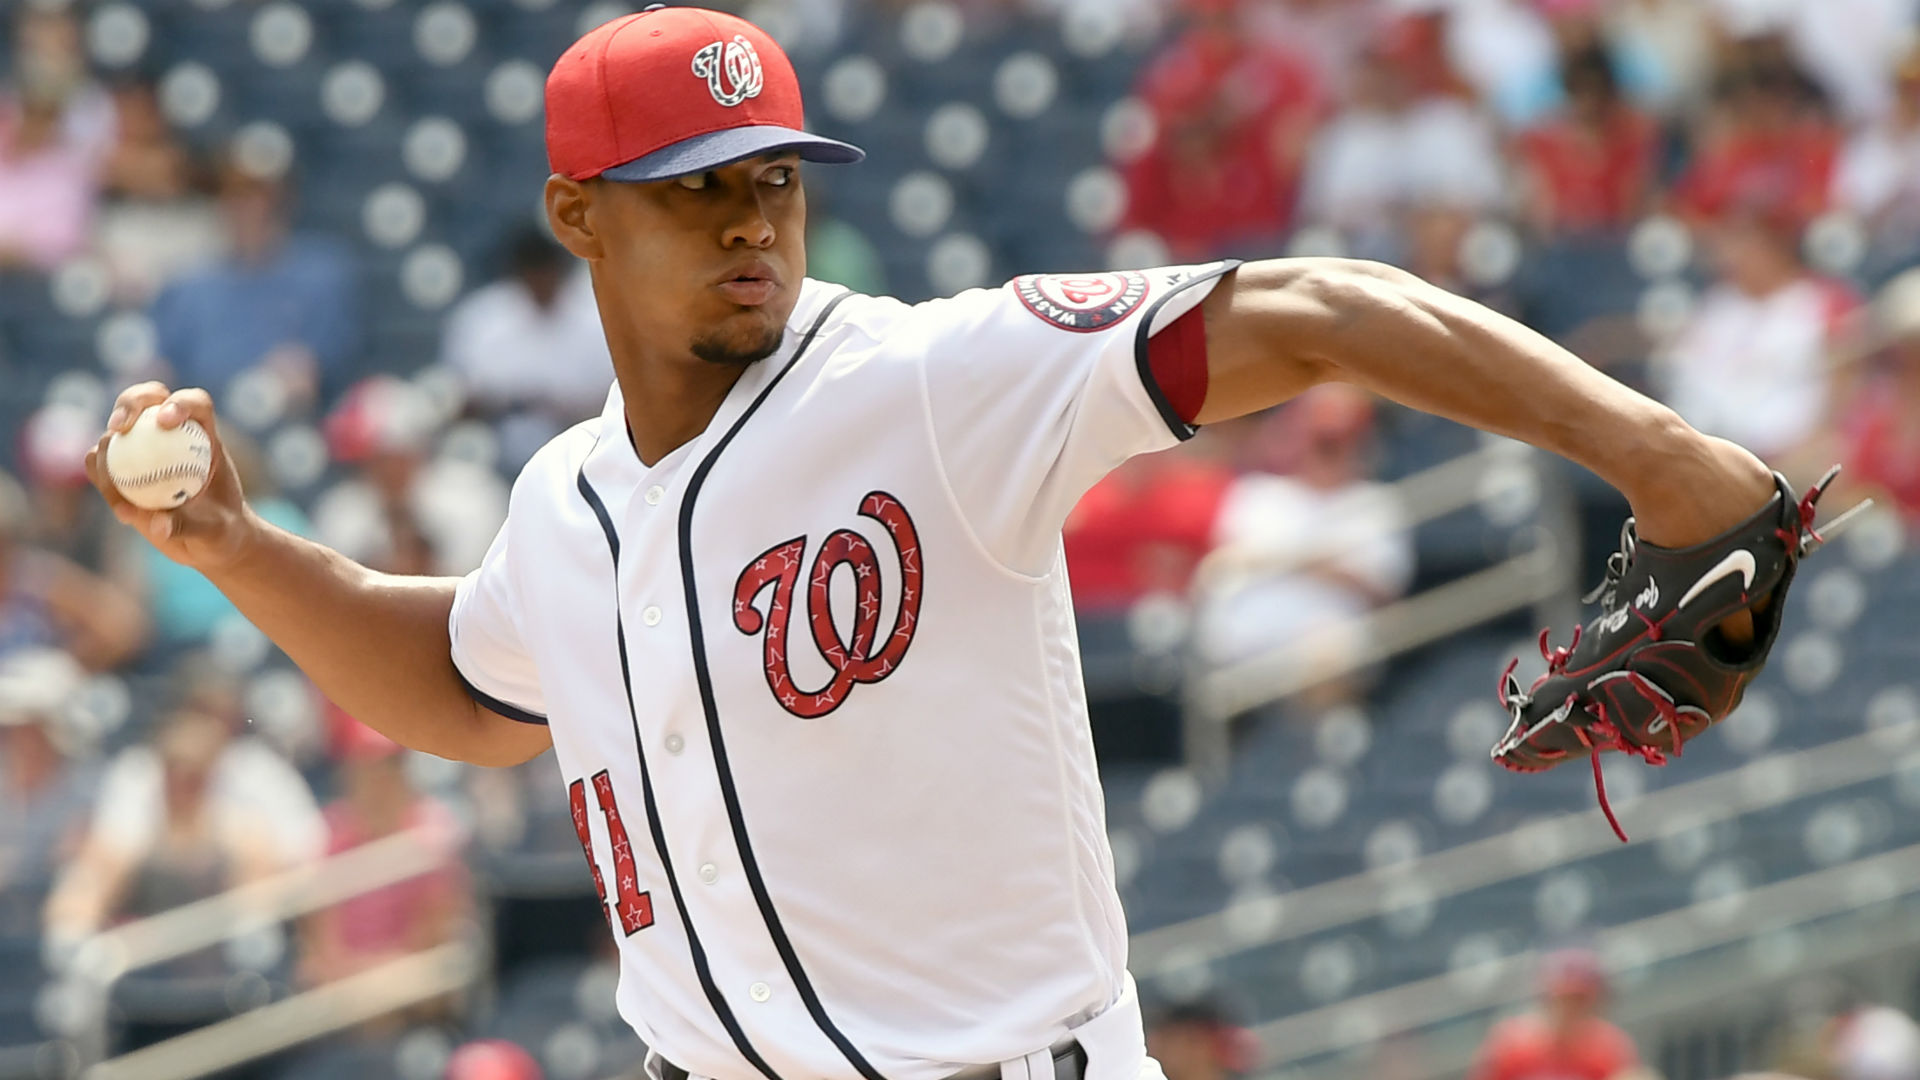 Nationals put Joe Ross (triceps) on disabled list